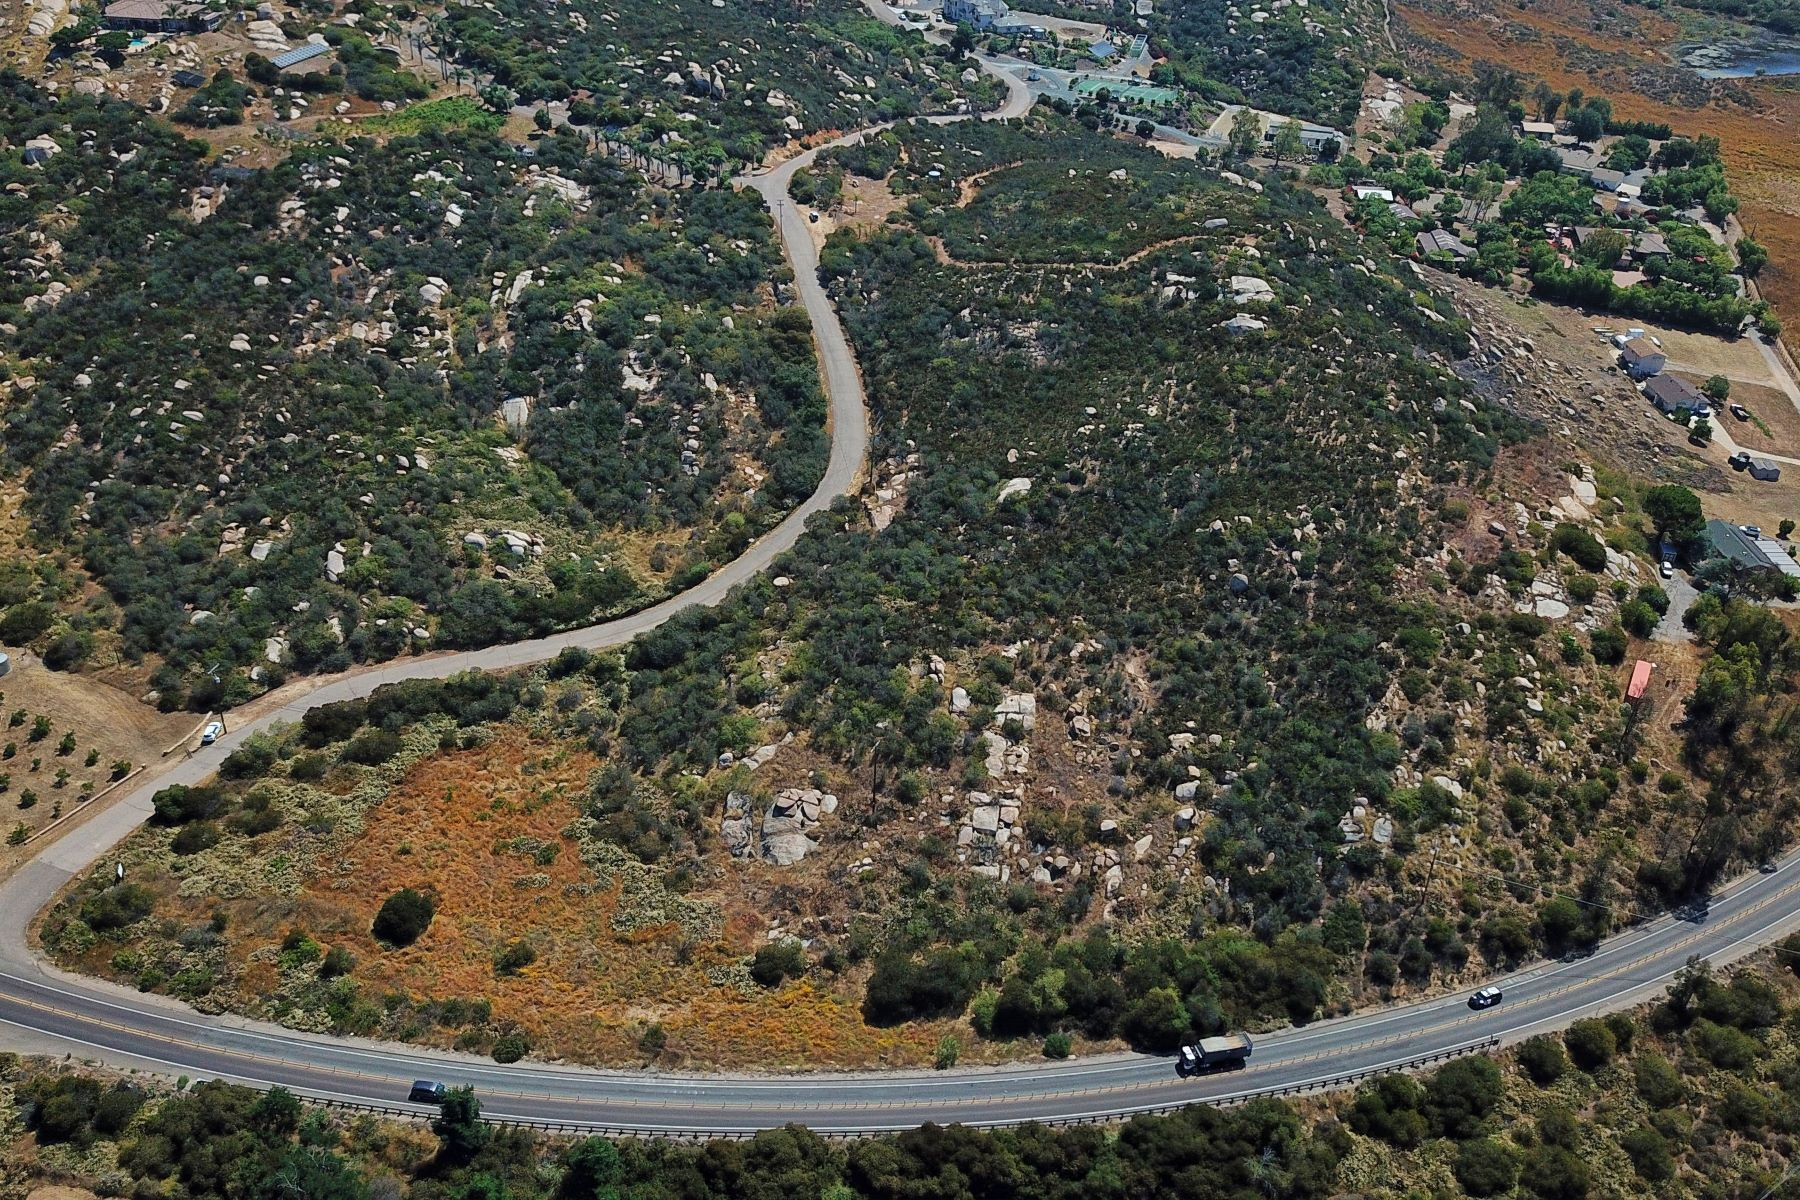 Land for Sale at Chaparral Land 0 Chaparral Way Poway, California 92064 United States